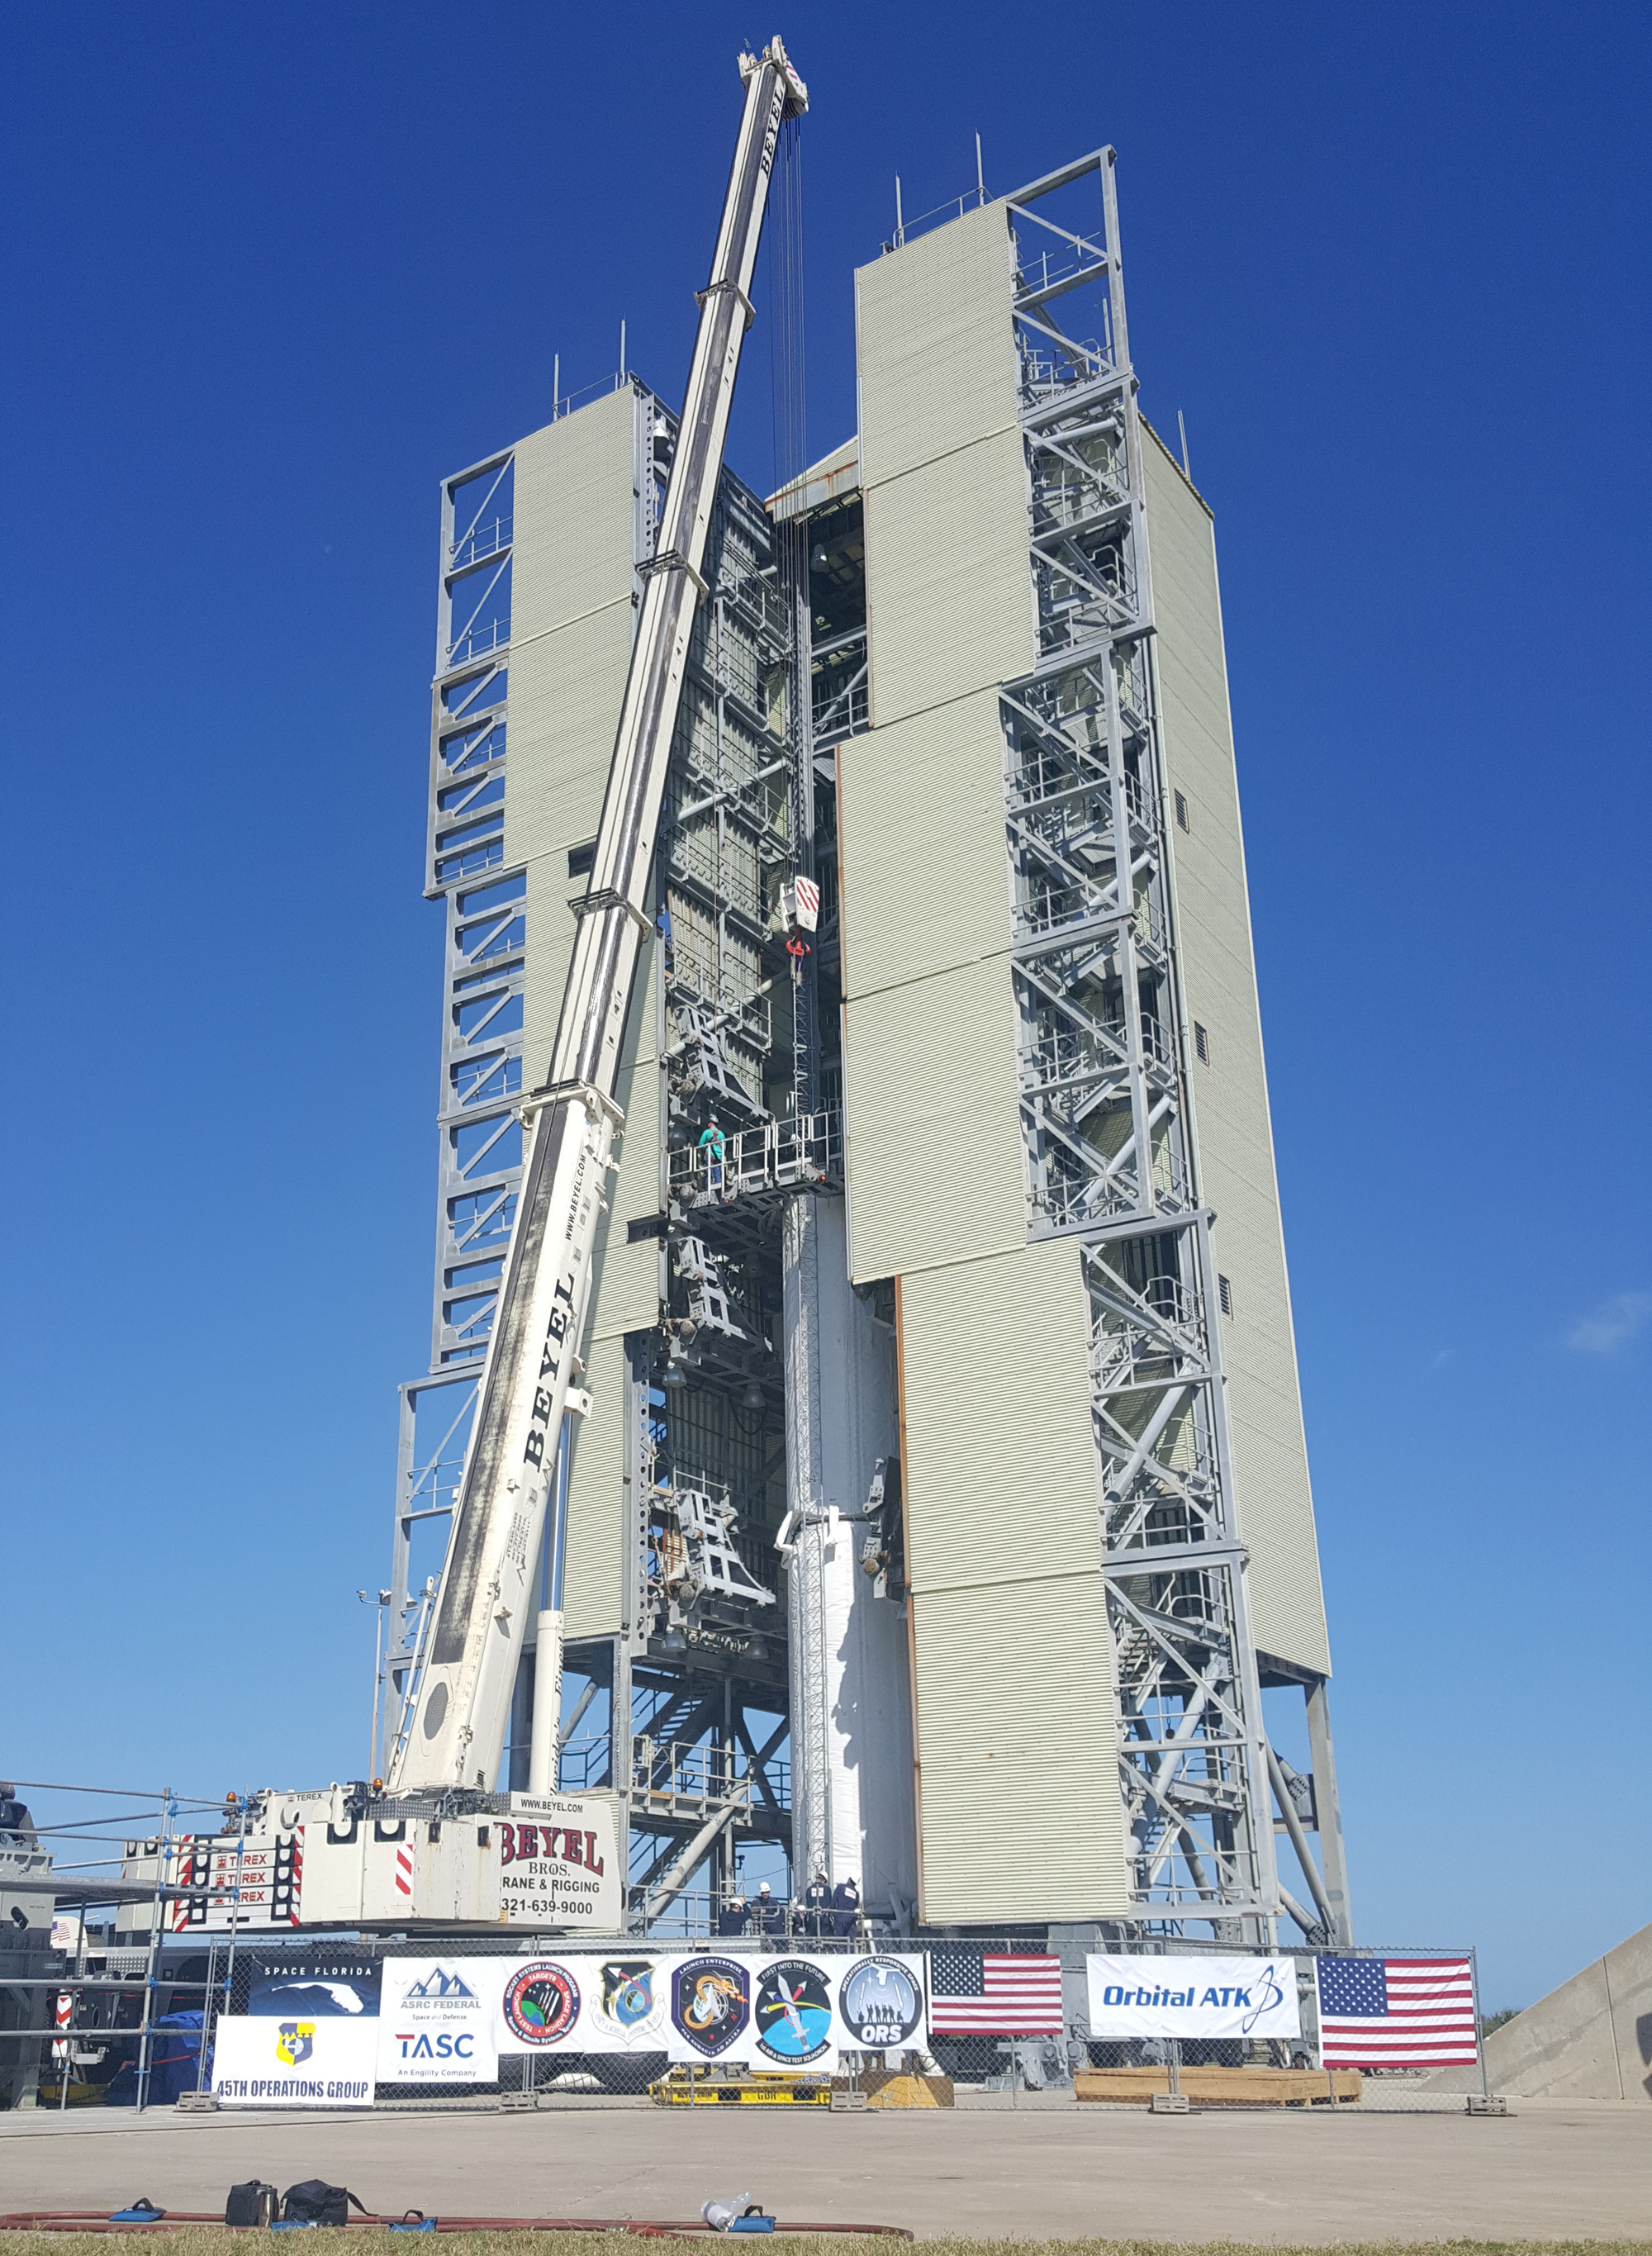 US Air Force Prepping for Historic Minotaur IV Rocket Launch in July (Photos)